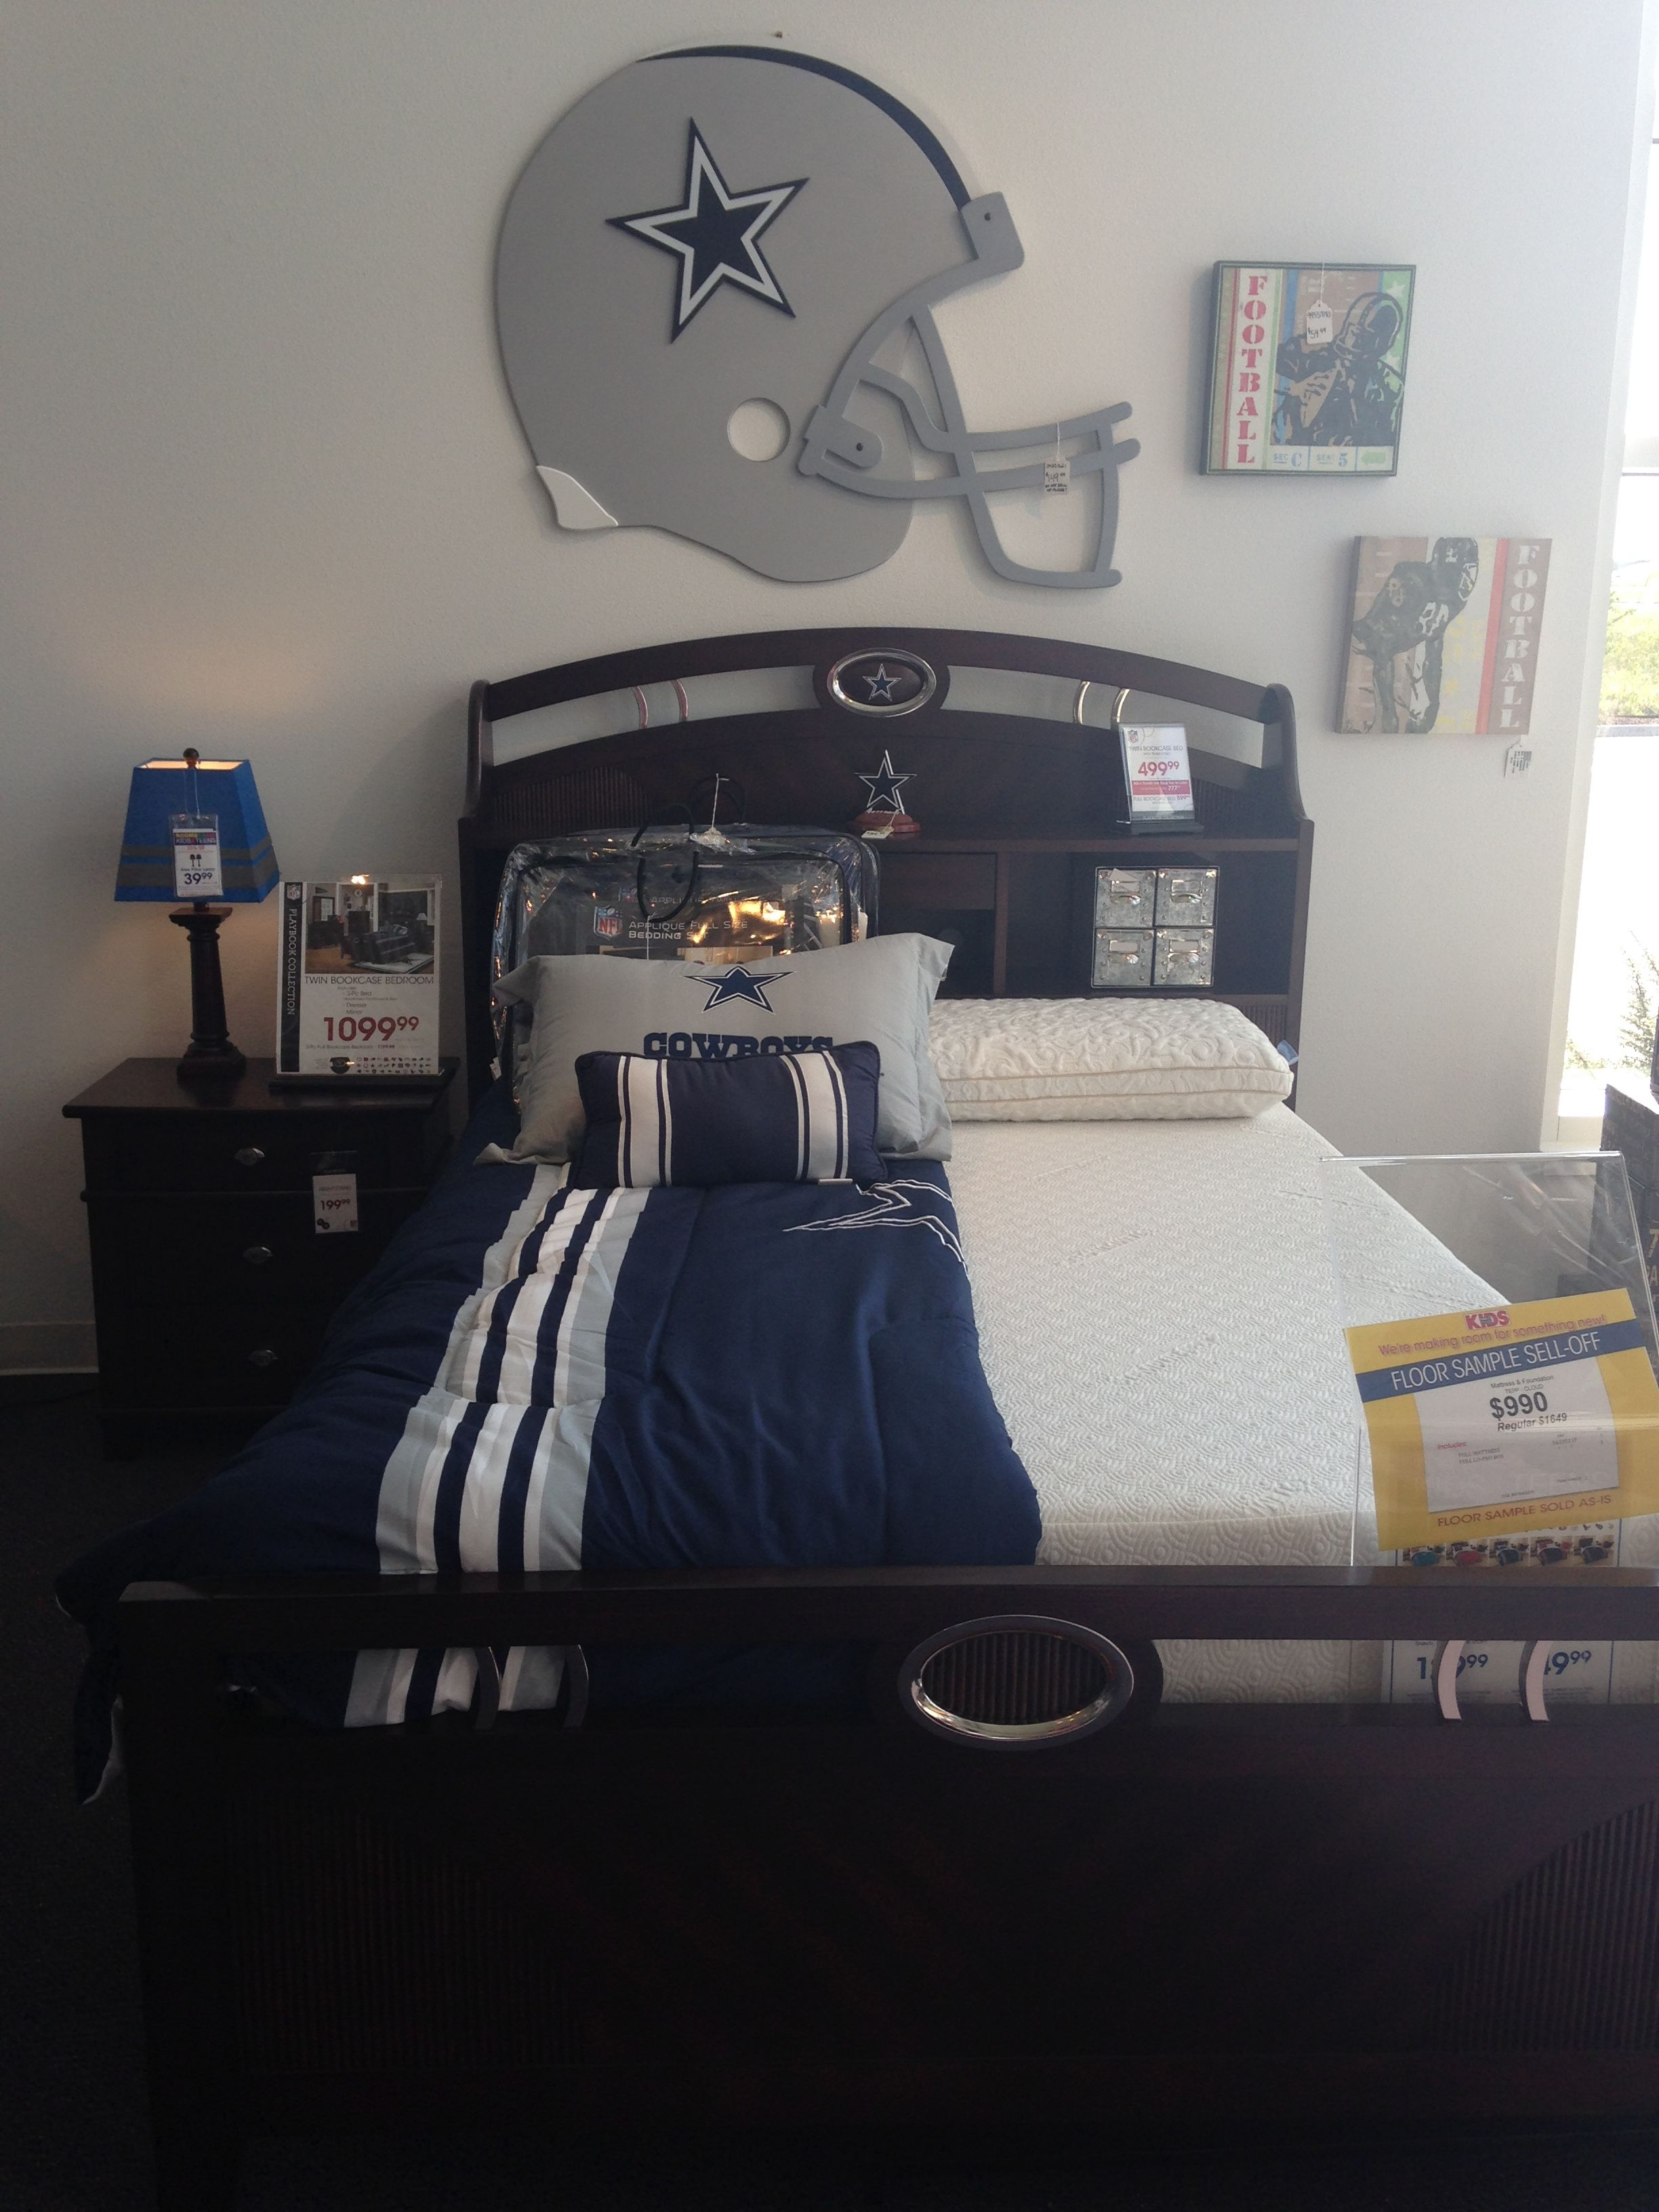 Merveilleux Dallas Cowboys Bed Set Found In Rooms To Go.